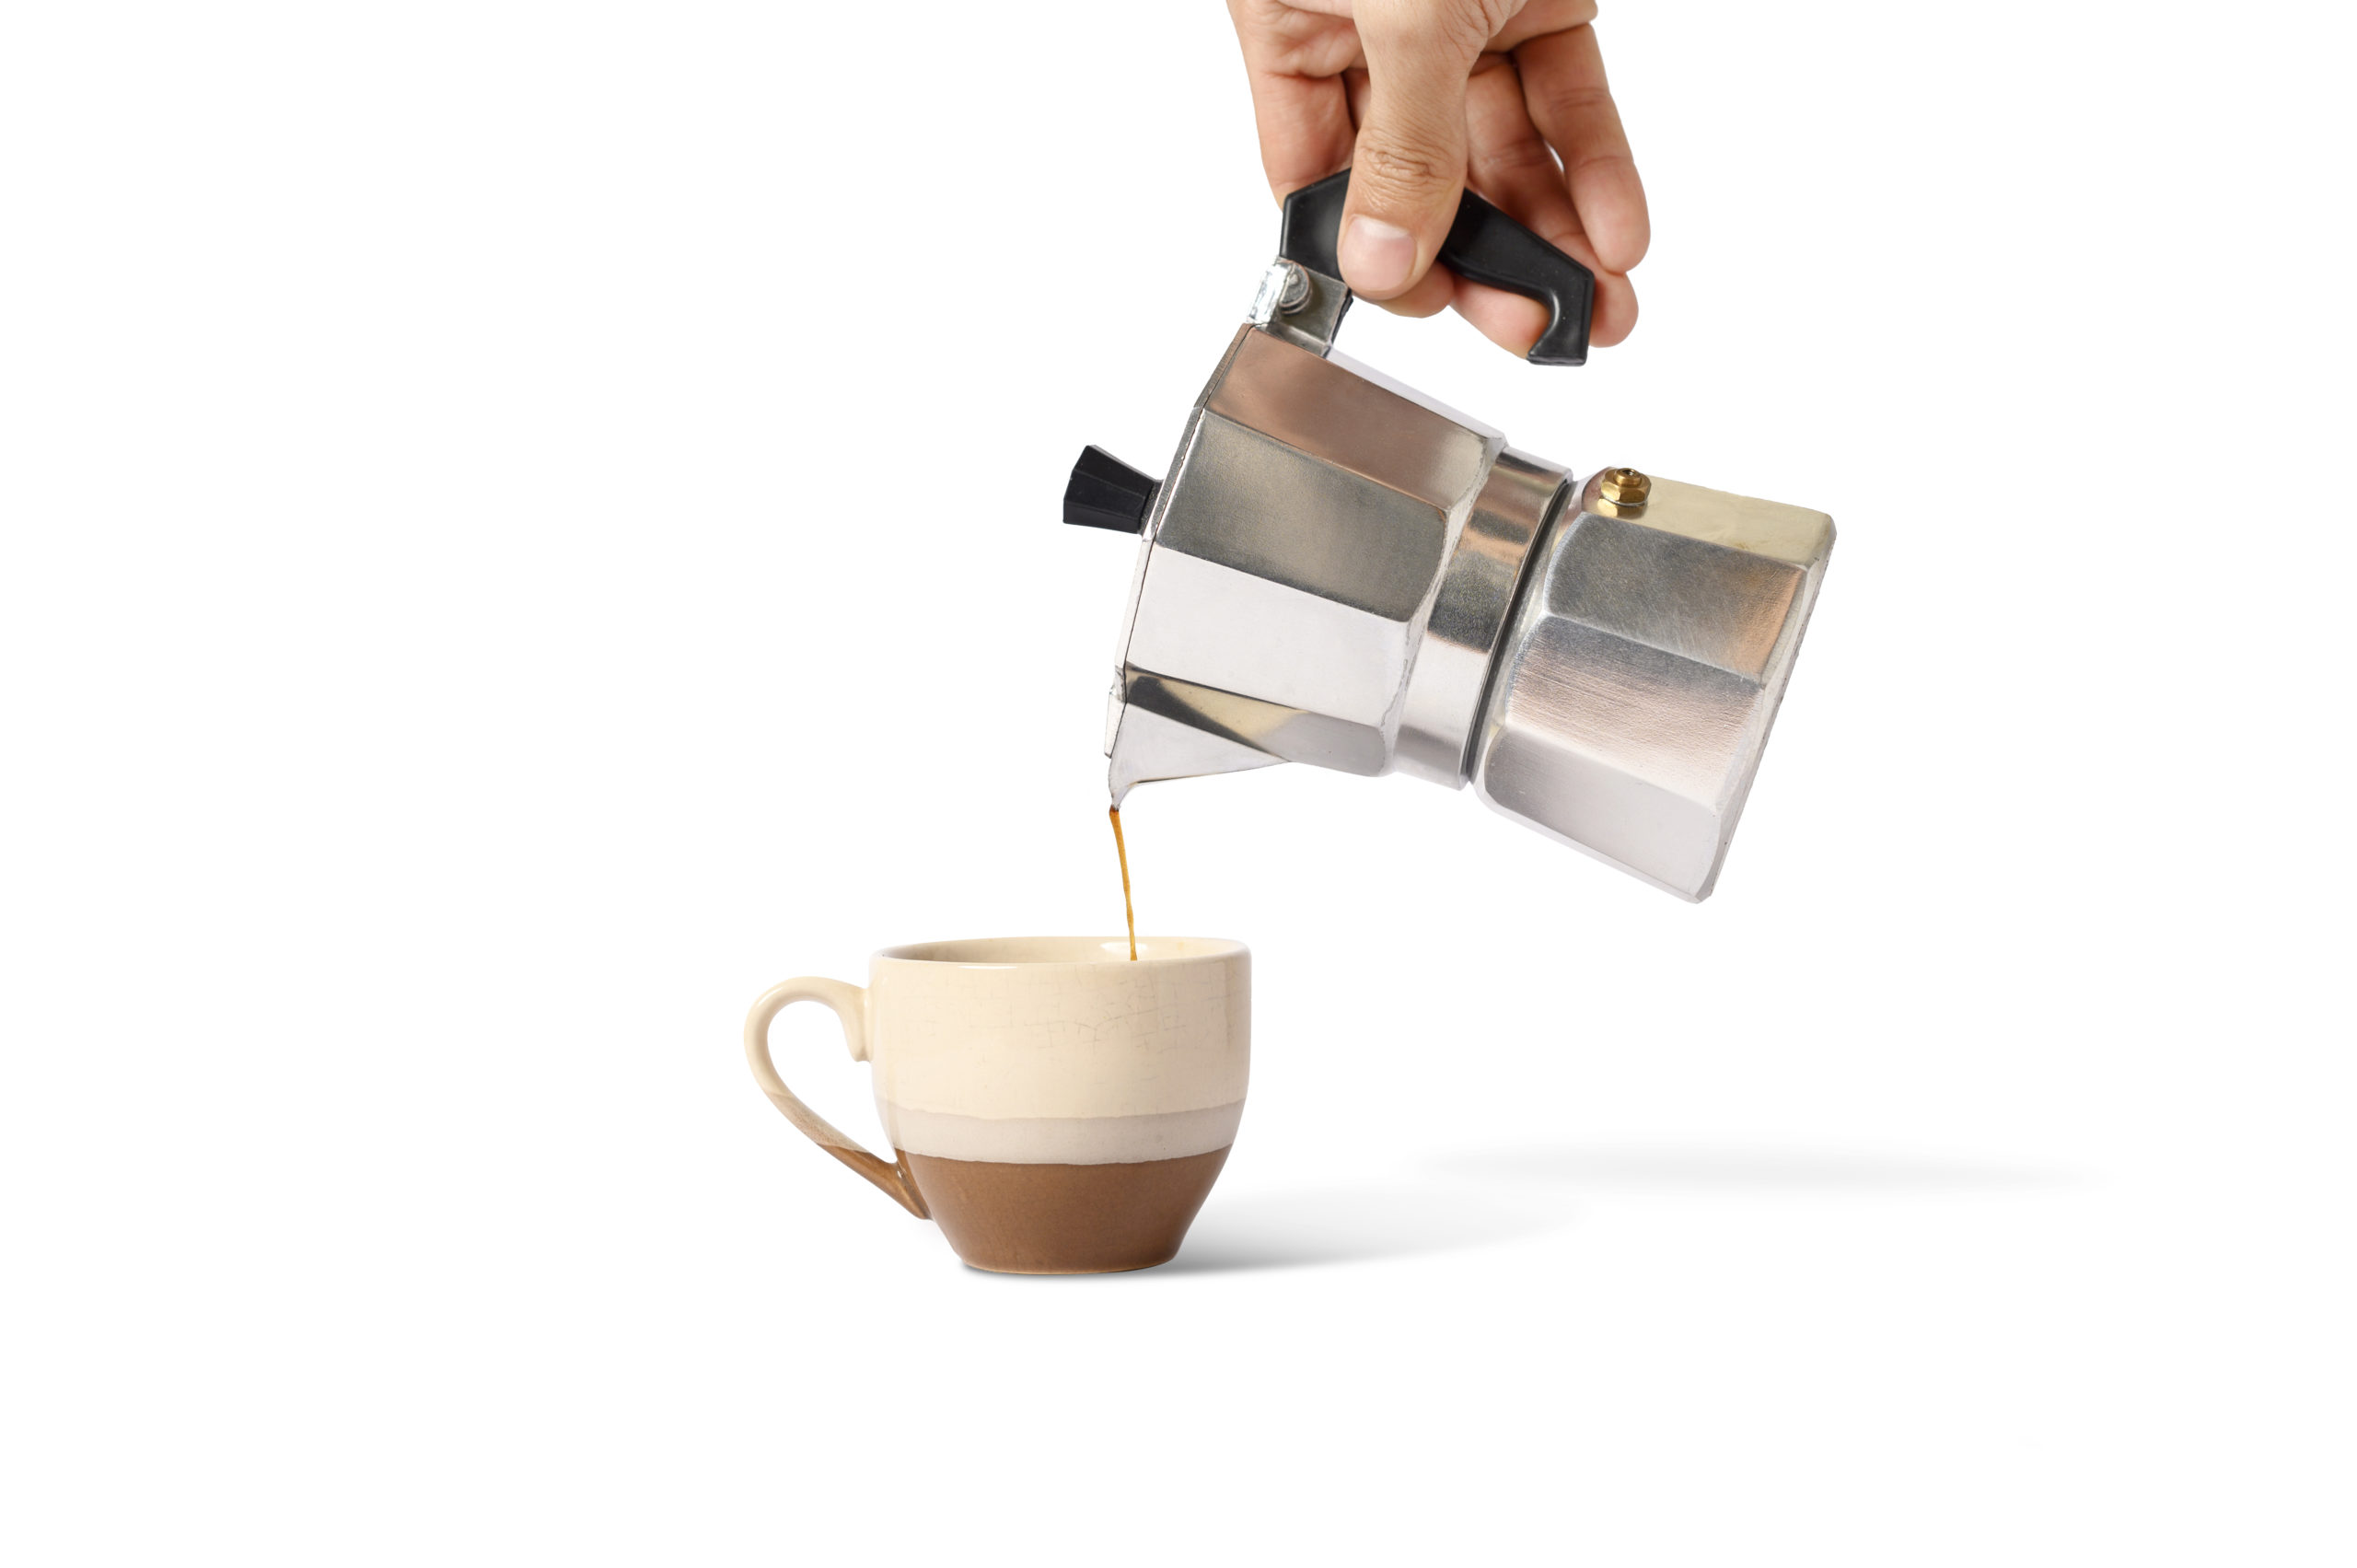 How to use coffee percolator